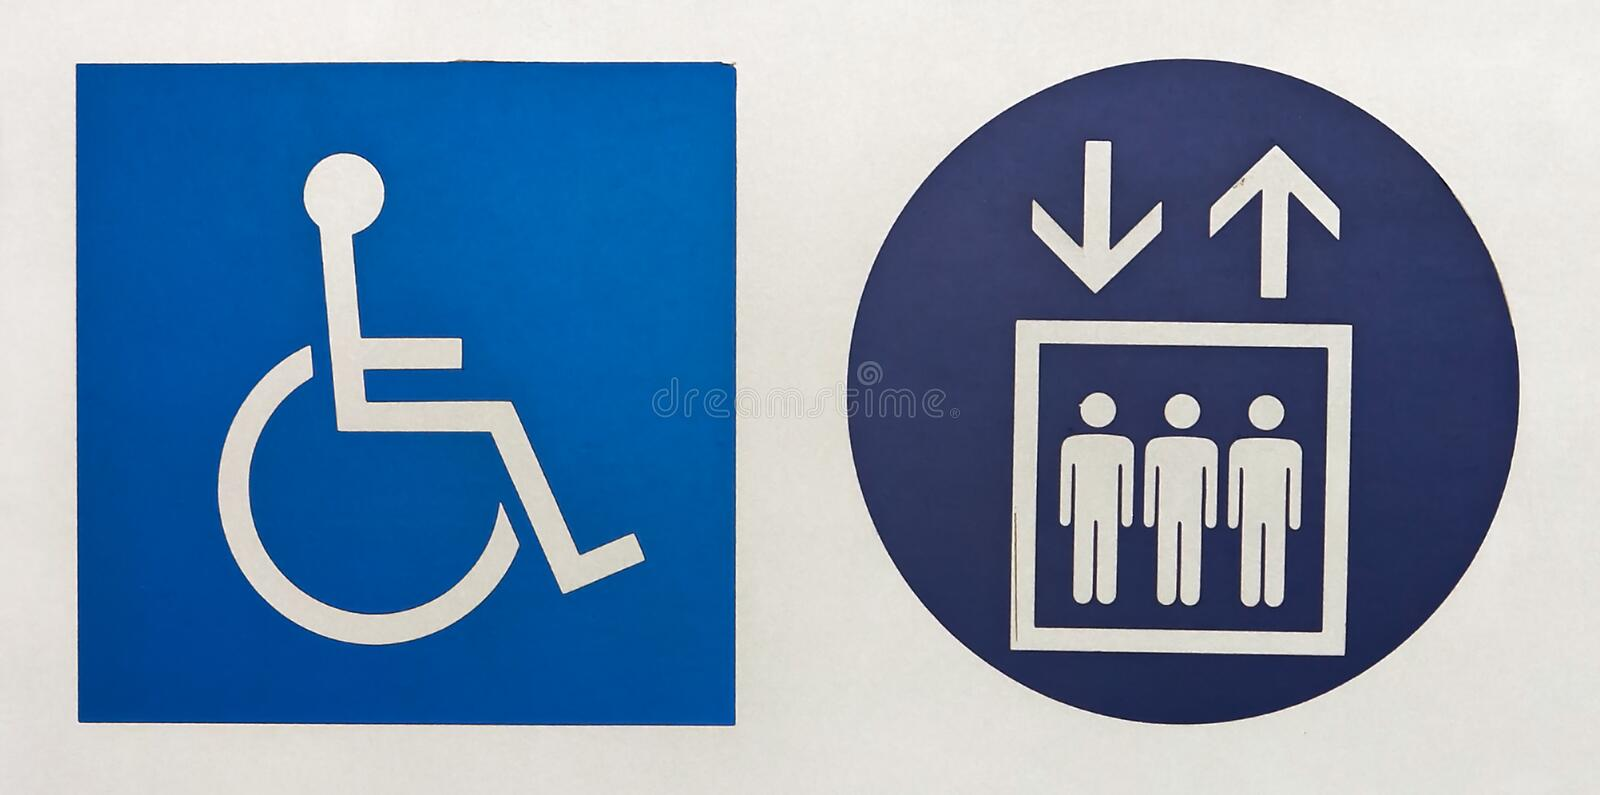 International symbol of access and elevator symbol. In brazilian subway station vector illustration